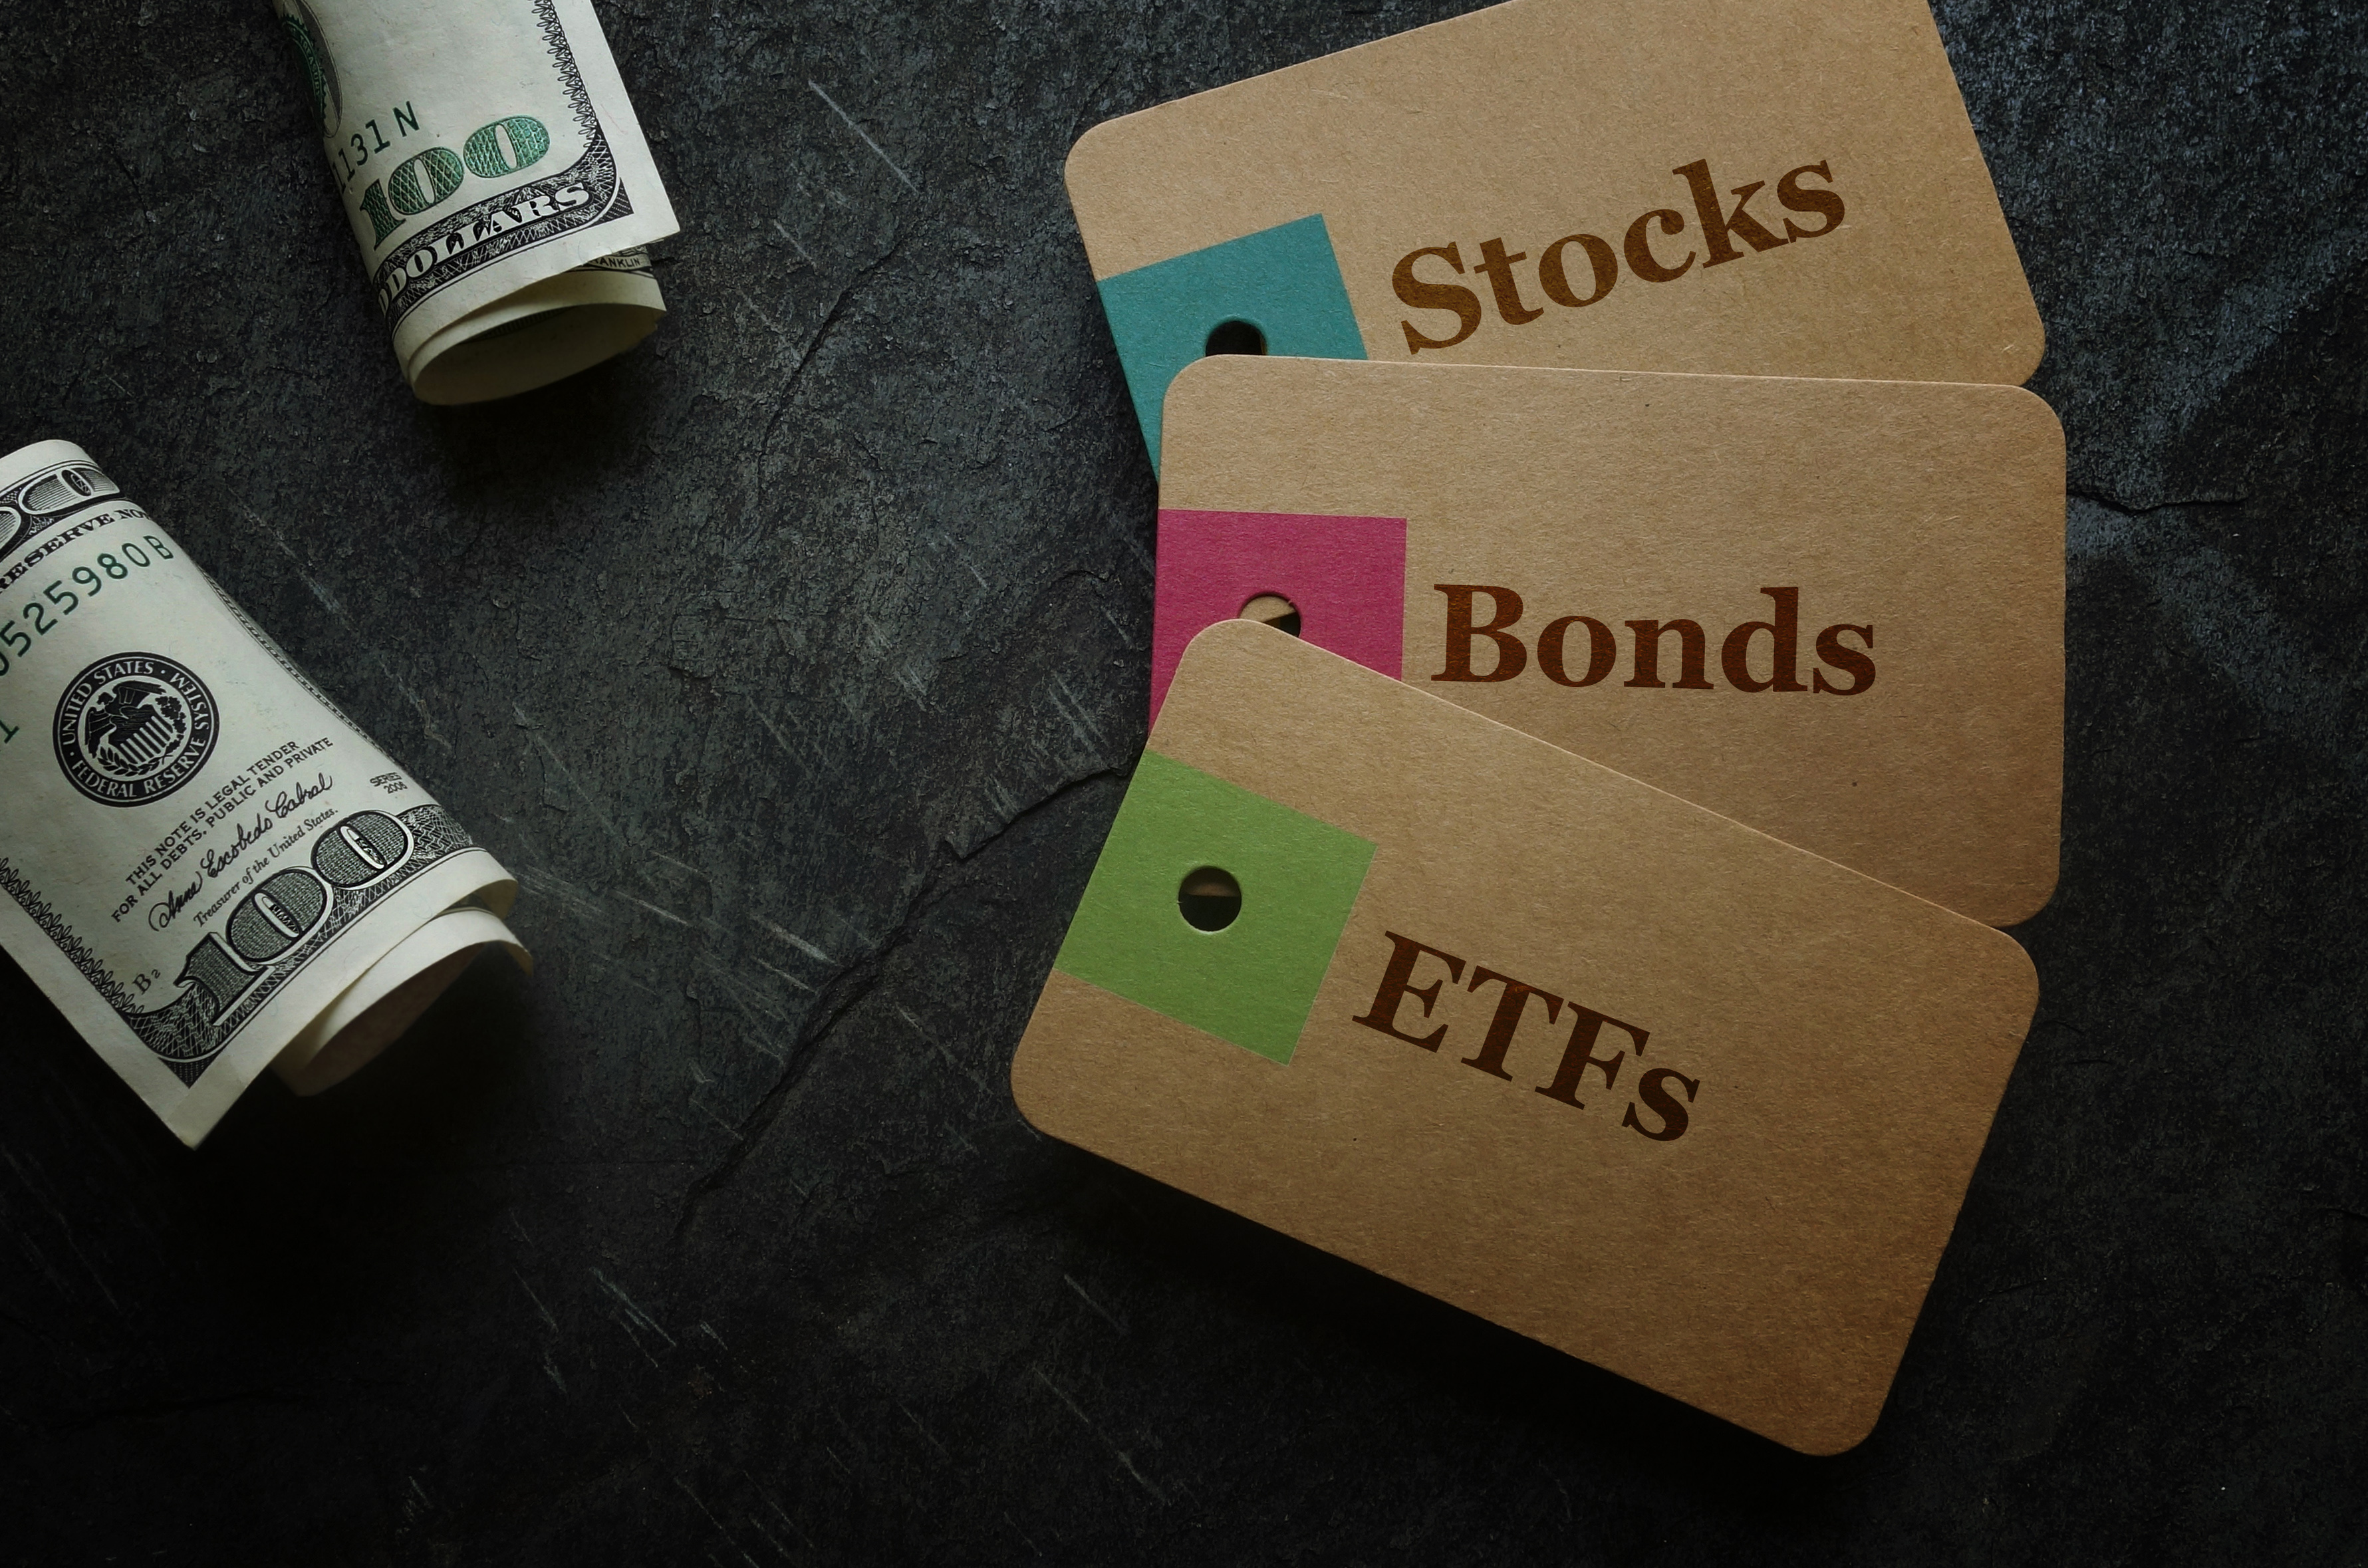 ETF (Exchange Traded Funds), Stocks and Bonds paper tags with cash on dark background